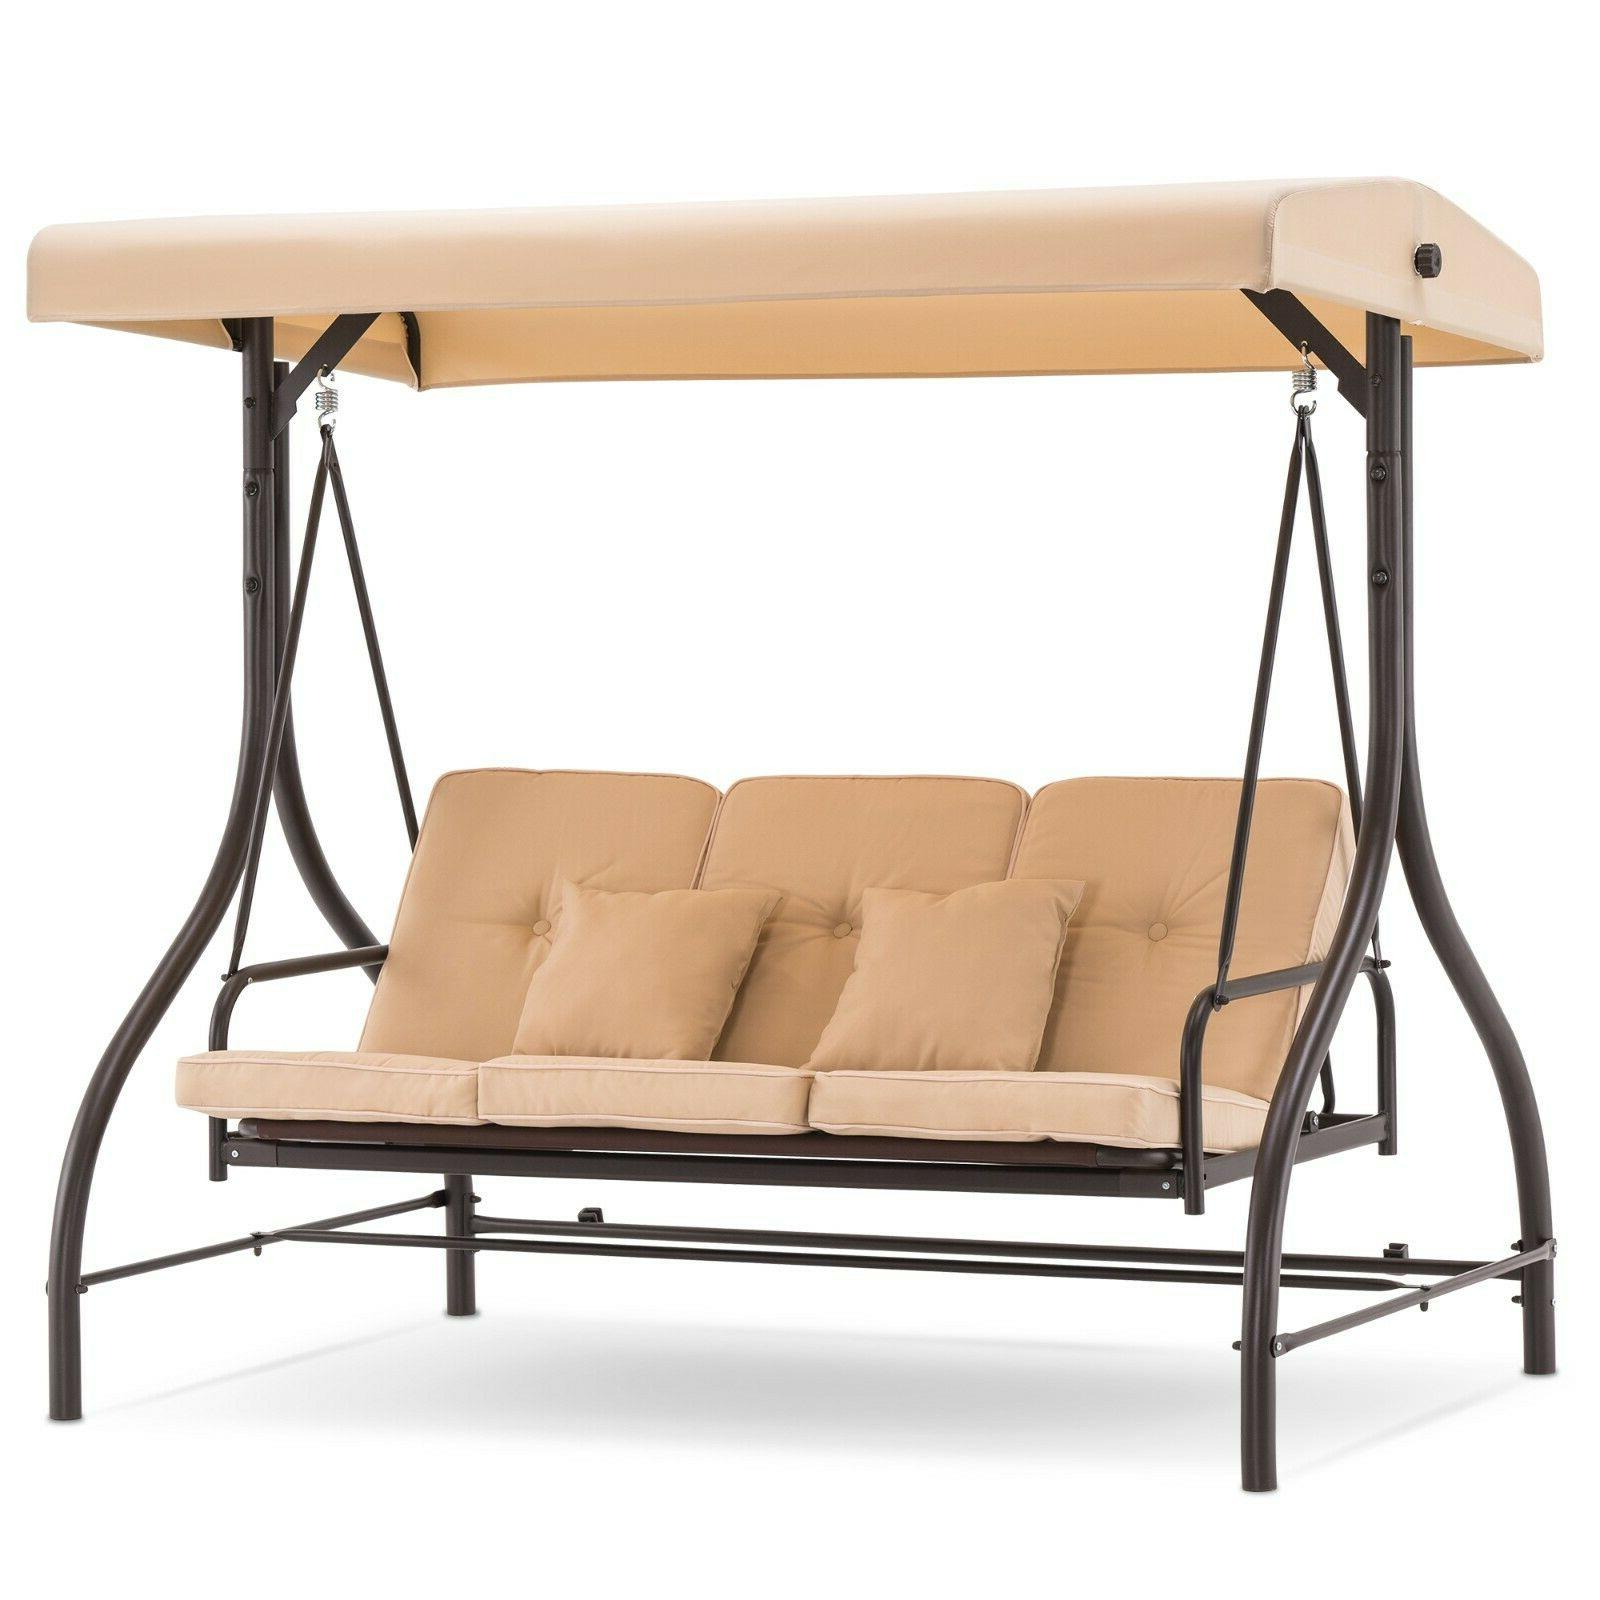 3 seat outdoor patio swing chair canopy